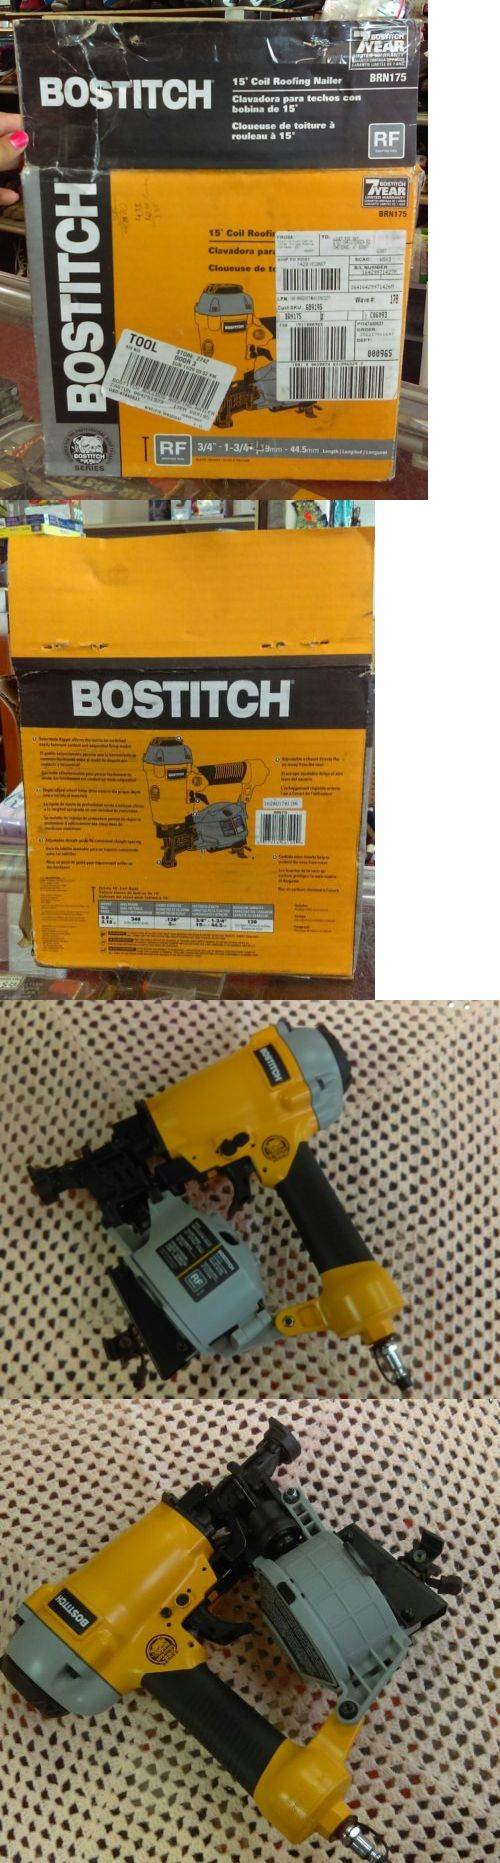 Roofing Guns 42243: Stanley Bostitch Brn175 Bulldog Roofing Nailer 1-3 4 Coil New Open Box -> BUY IT NOW ONLY: $149.99 on eBay!